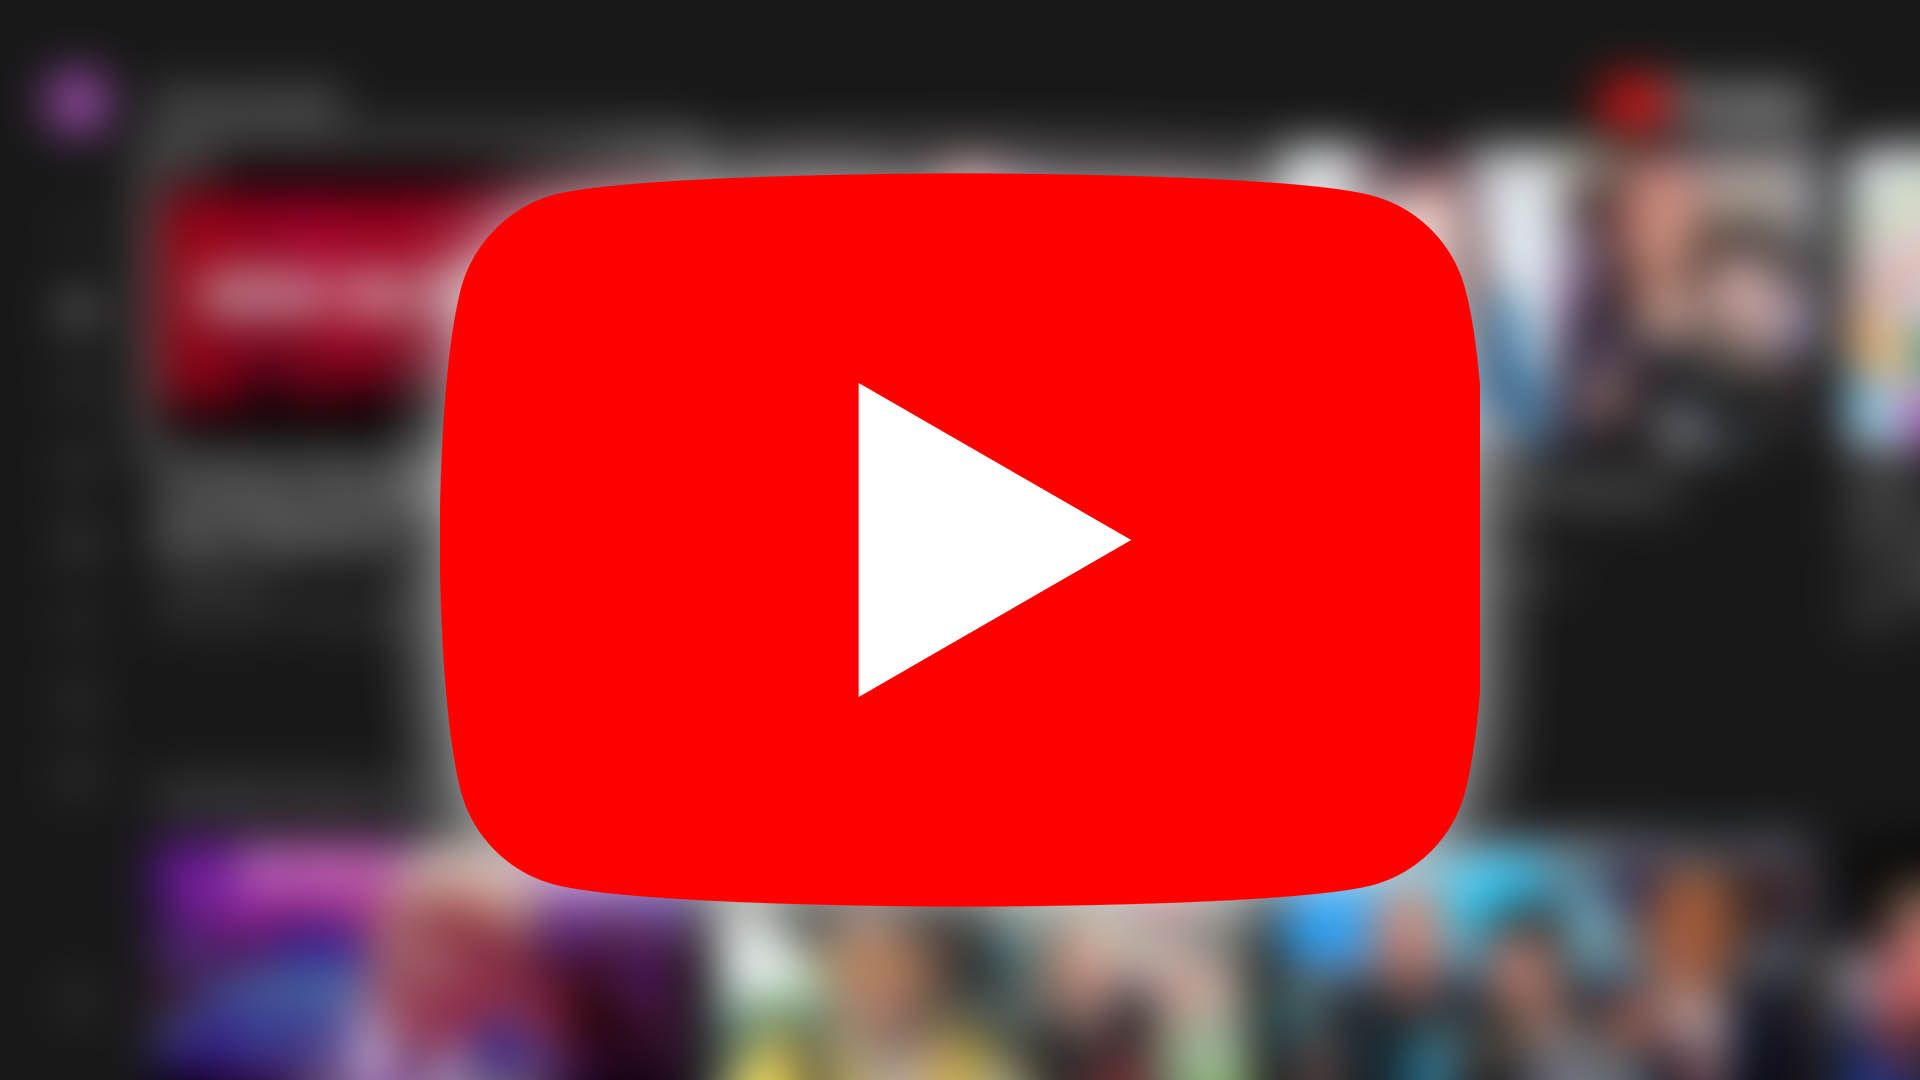 YouTube just fixed one of its most annoying design quirks on Android